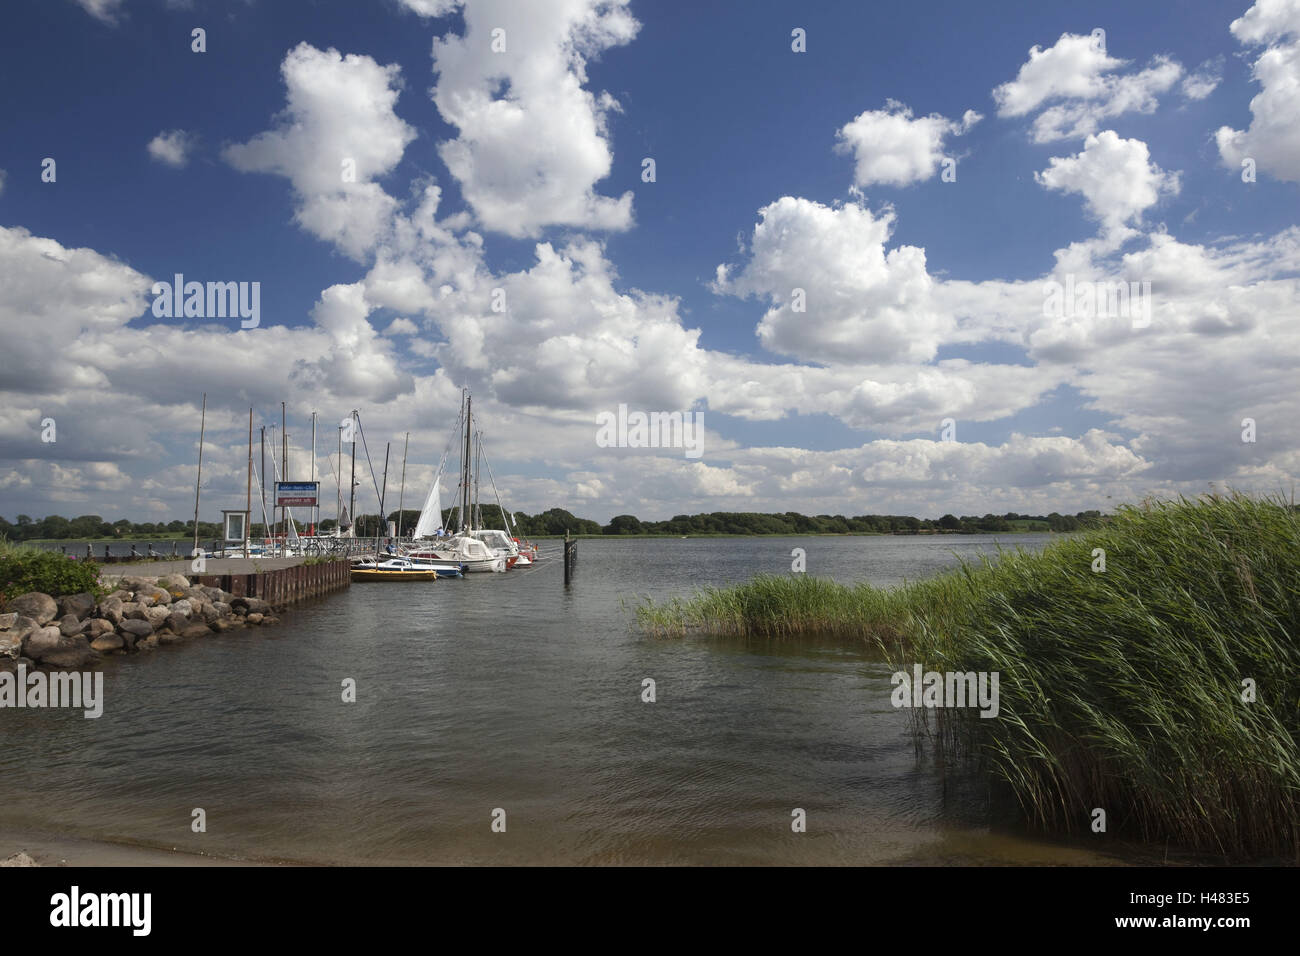 Germany, Schleswig - Holstein, region Angeln, Schlei at Ulsnis, Stock Photo